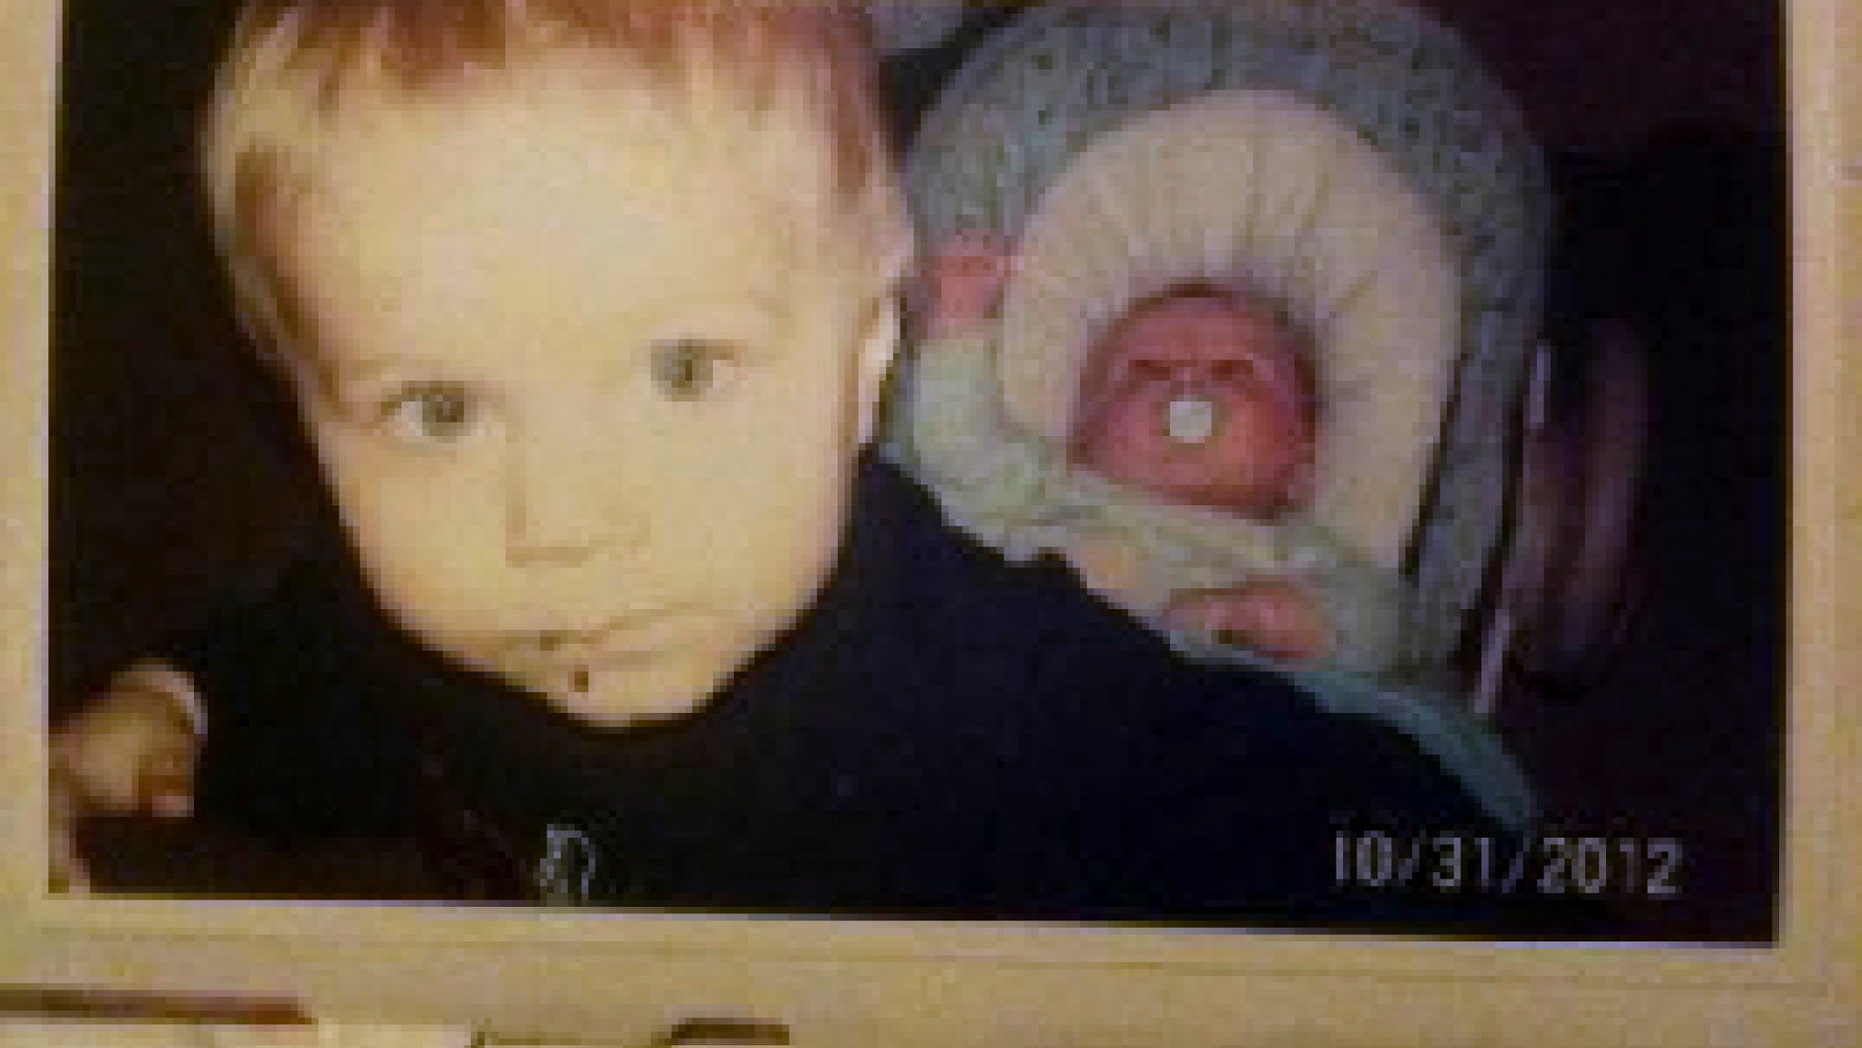 This photo released by the Connecticut State Police during an Amber Alert Tuesday, Feb. 26, 2013, shows Alton Dennison, 6, left, and Ashton Denison, 2 months old, right, who were taken from their daycare by their grandmother Tuesday afternoon. State police said the bodies of Ashton and Alton Perry and their grandmother, Debra Denison, 47, were found Tuesday night in Preston, Conn. (AP Photo/Connecticut State Police)